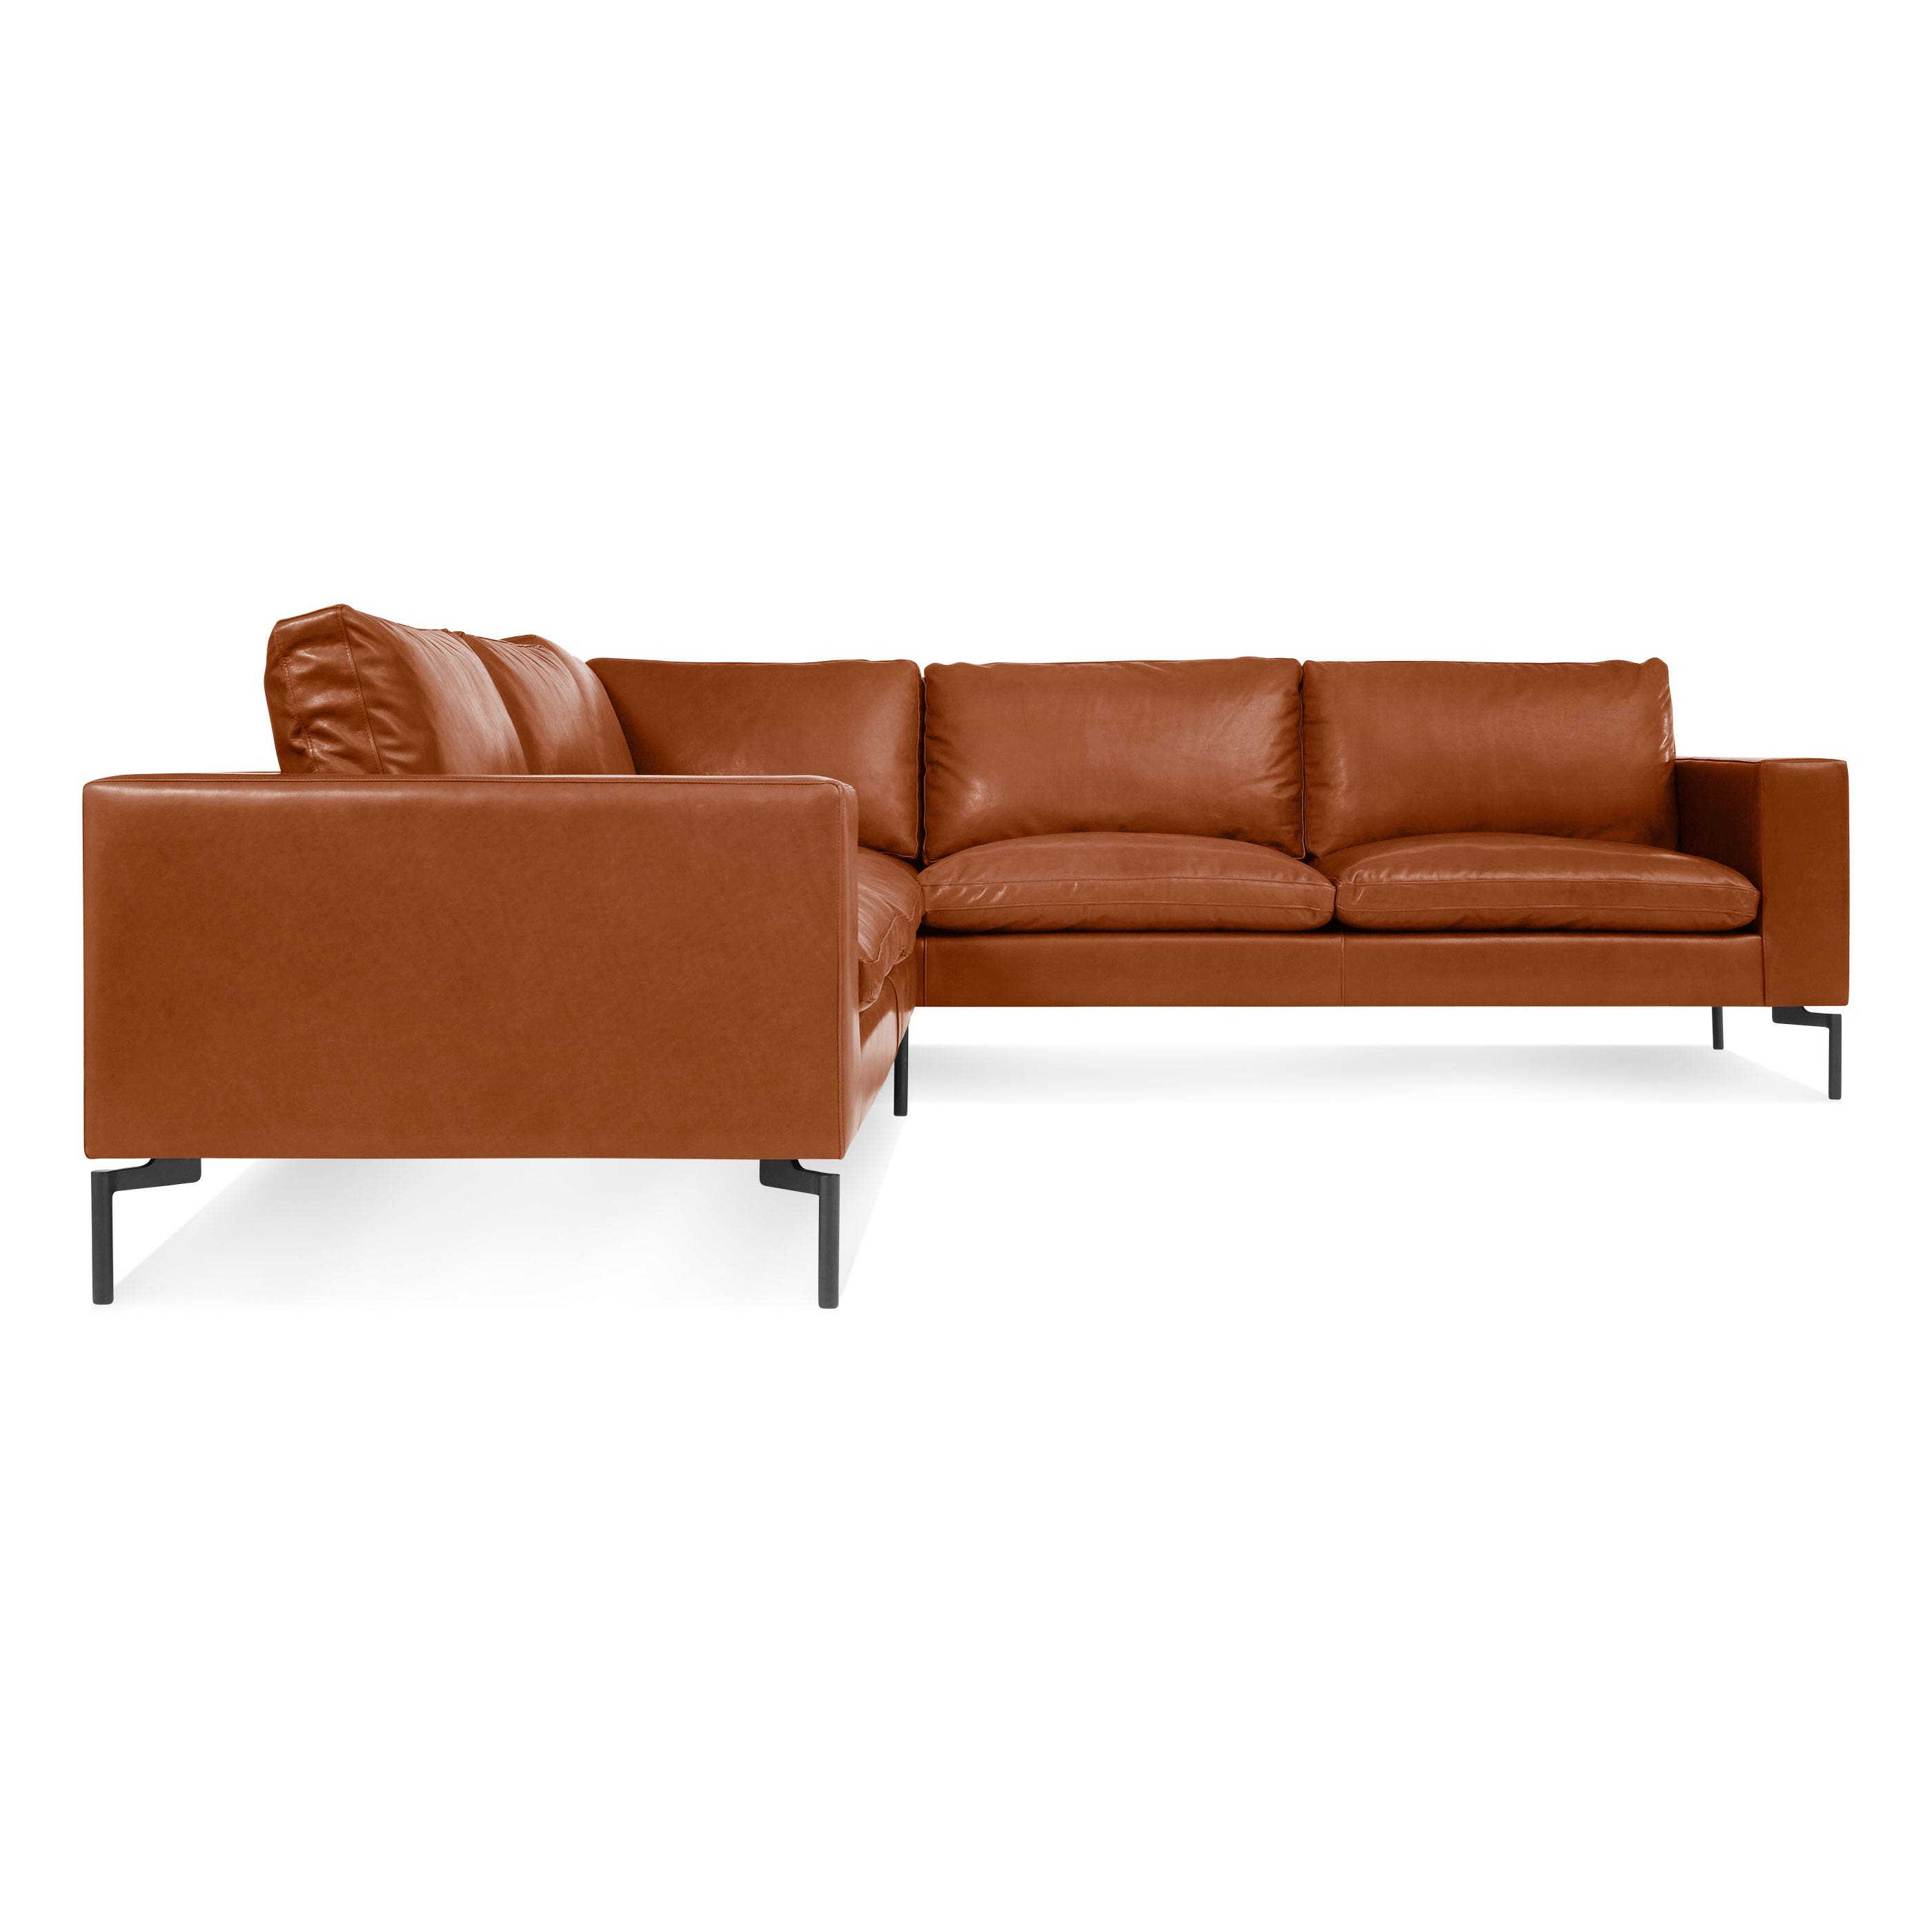 Previous image New Standard Right Leather Sectional Sofa - Small - Toffee Leather / Black ...  sc 1 st  Blu Dot : small white leather sectional - Sectionals, Sofas & Couches